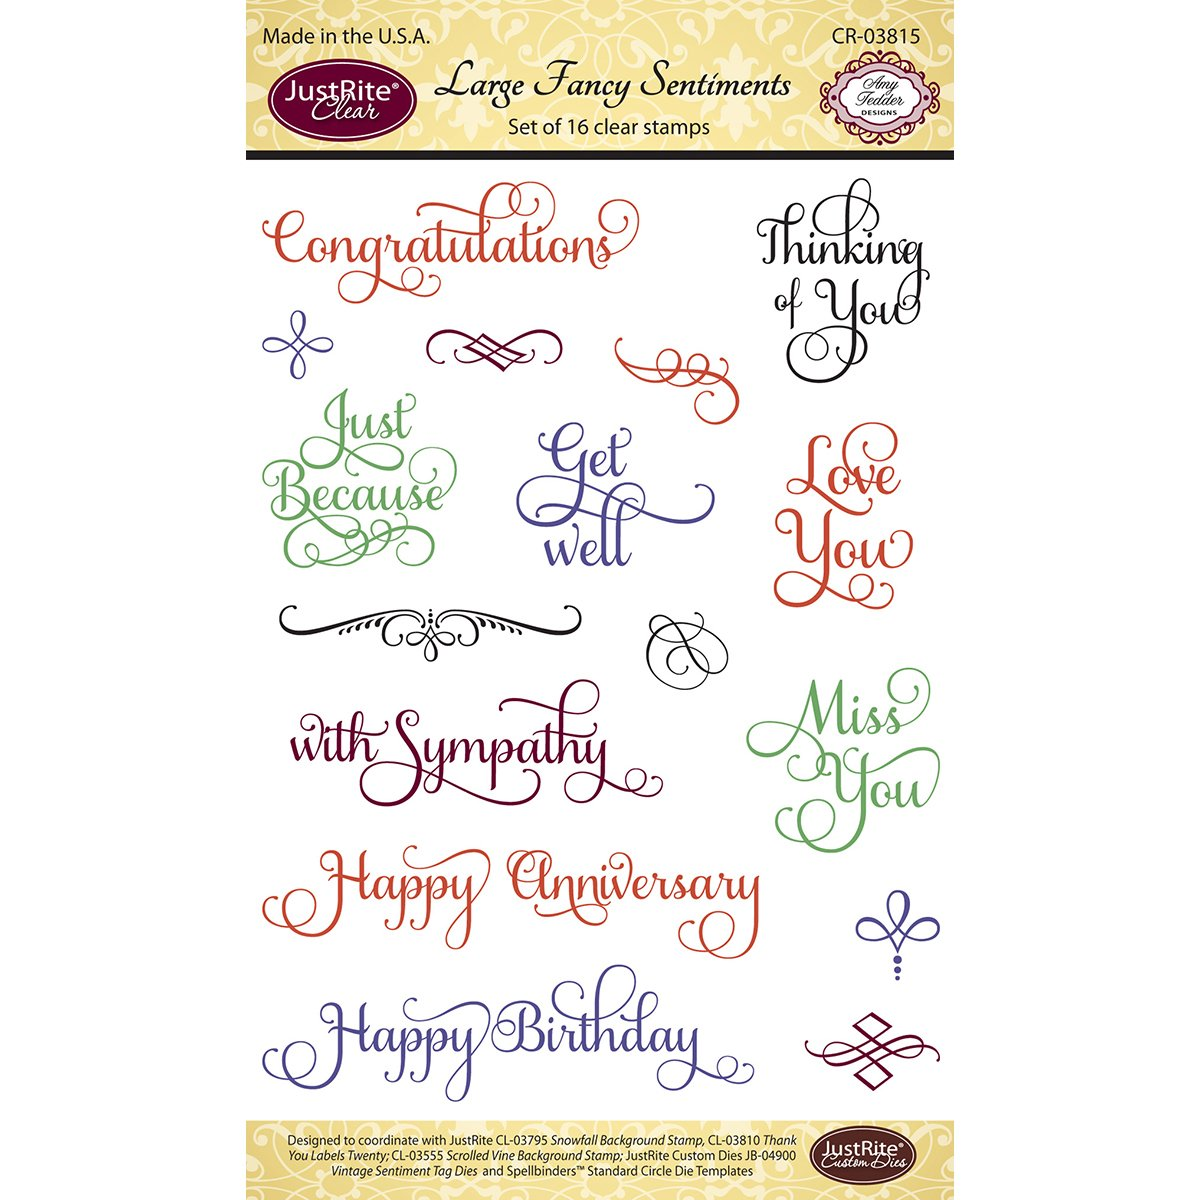 Justrite CR03815 18 Piece Papercraft Clear Stamp Set, 4 by 6, Large Fancy Sentiments 4 by 6